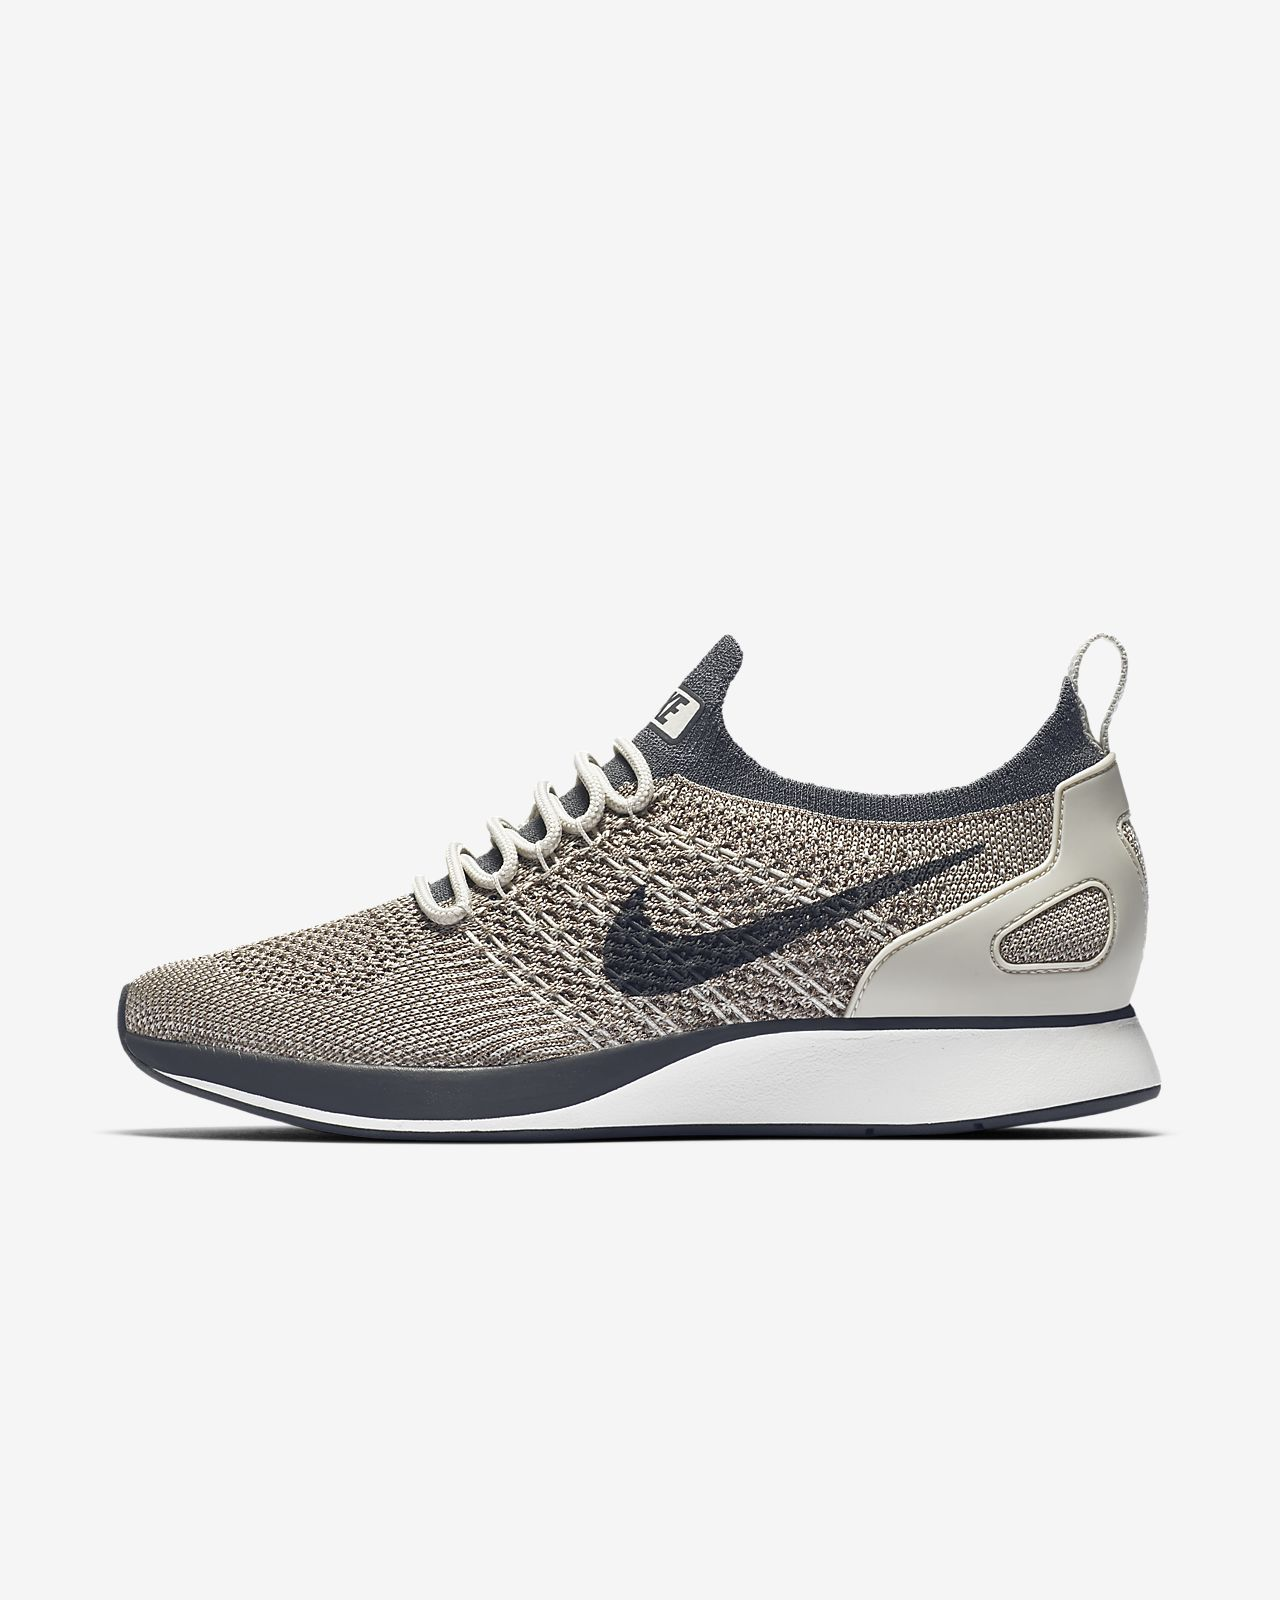 Nike Air Zoom Mariah Flyknit Racer Womens AA0521-002 Grey Running Shoes